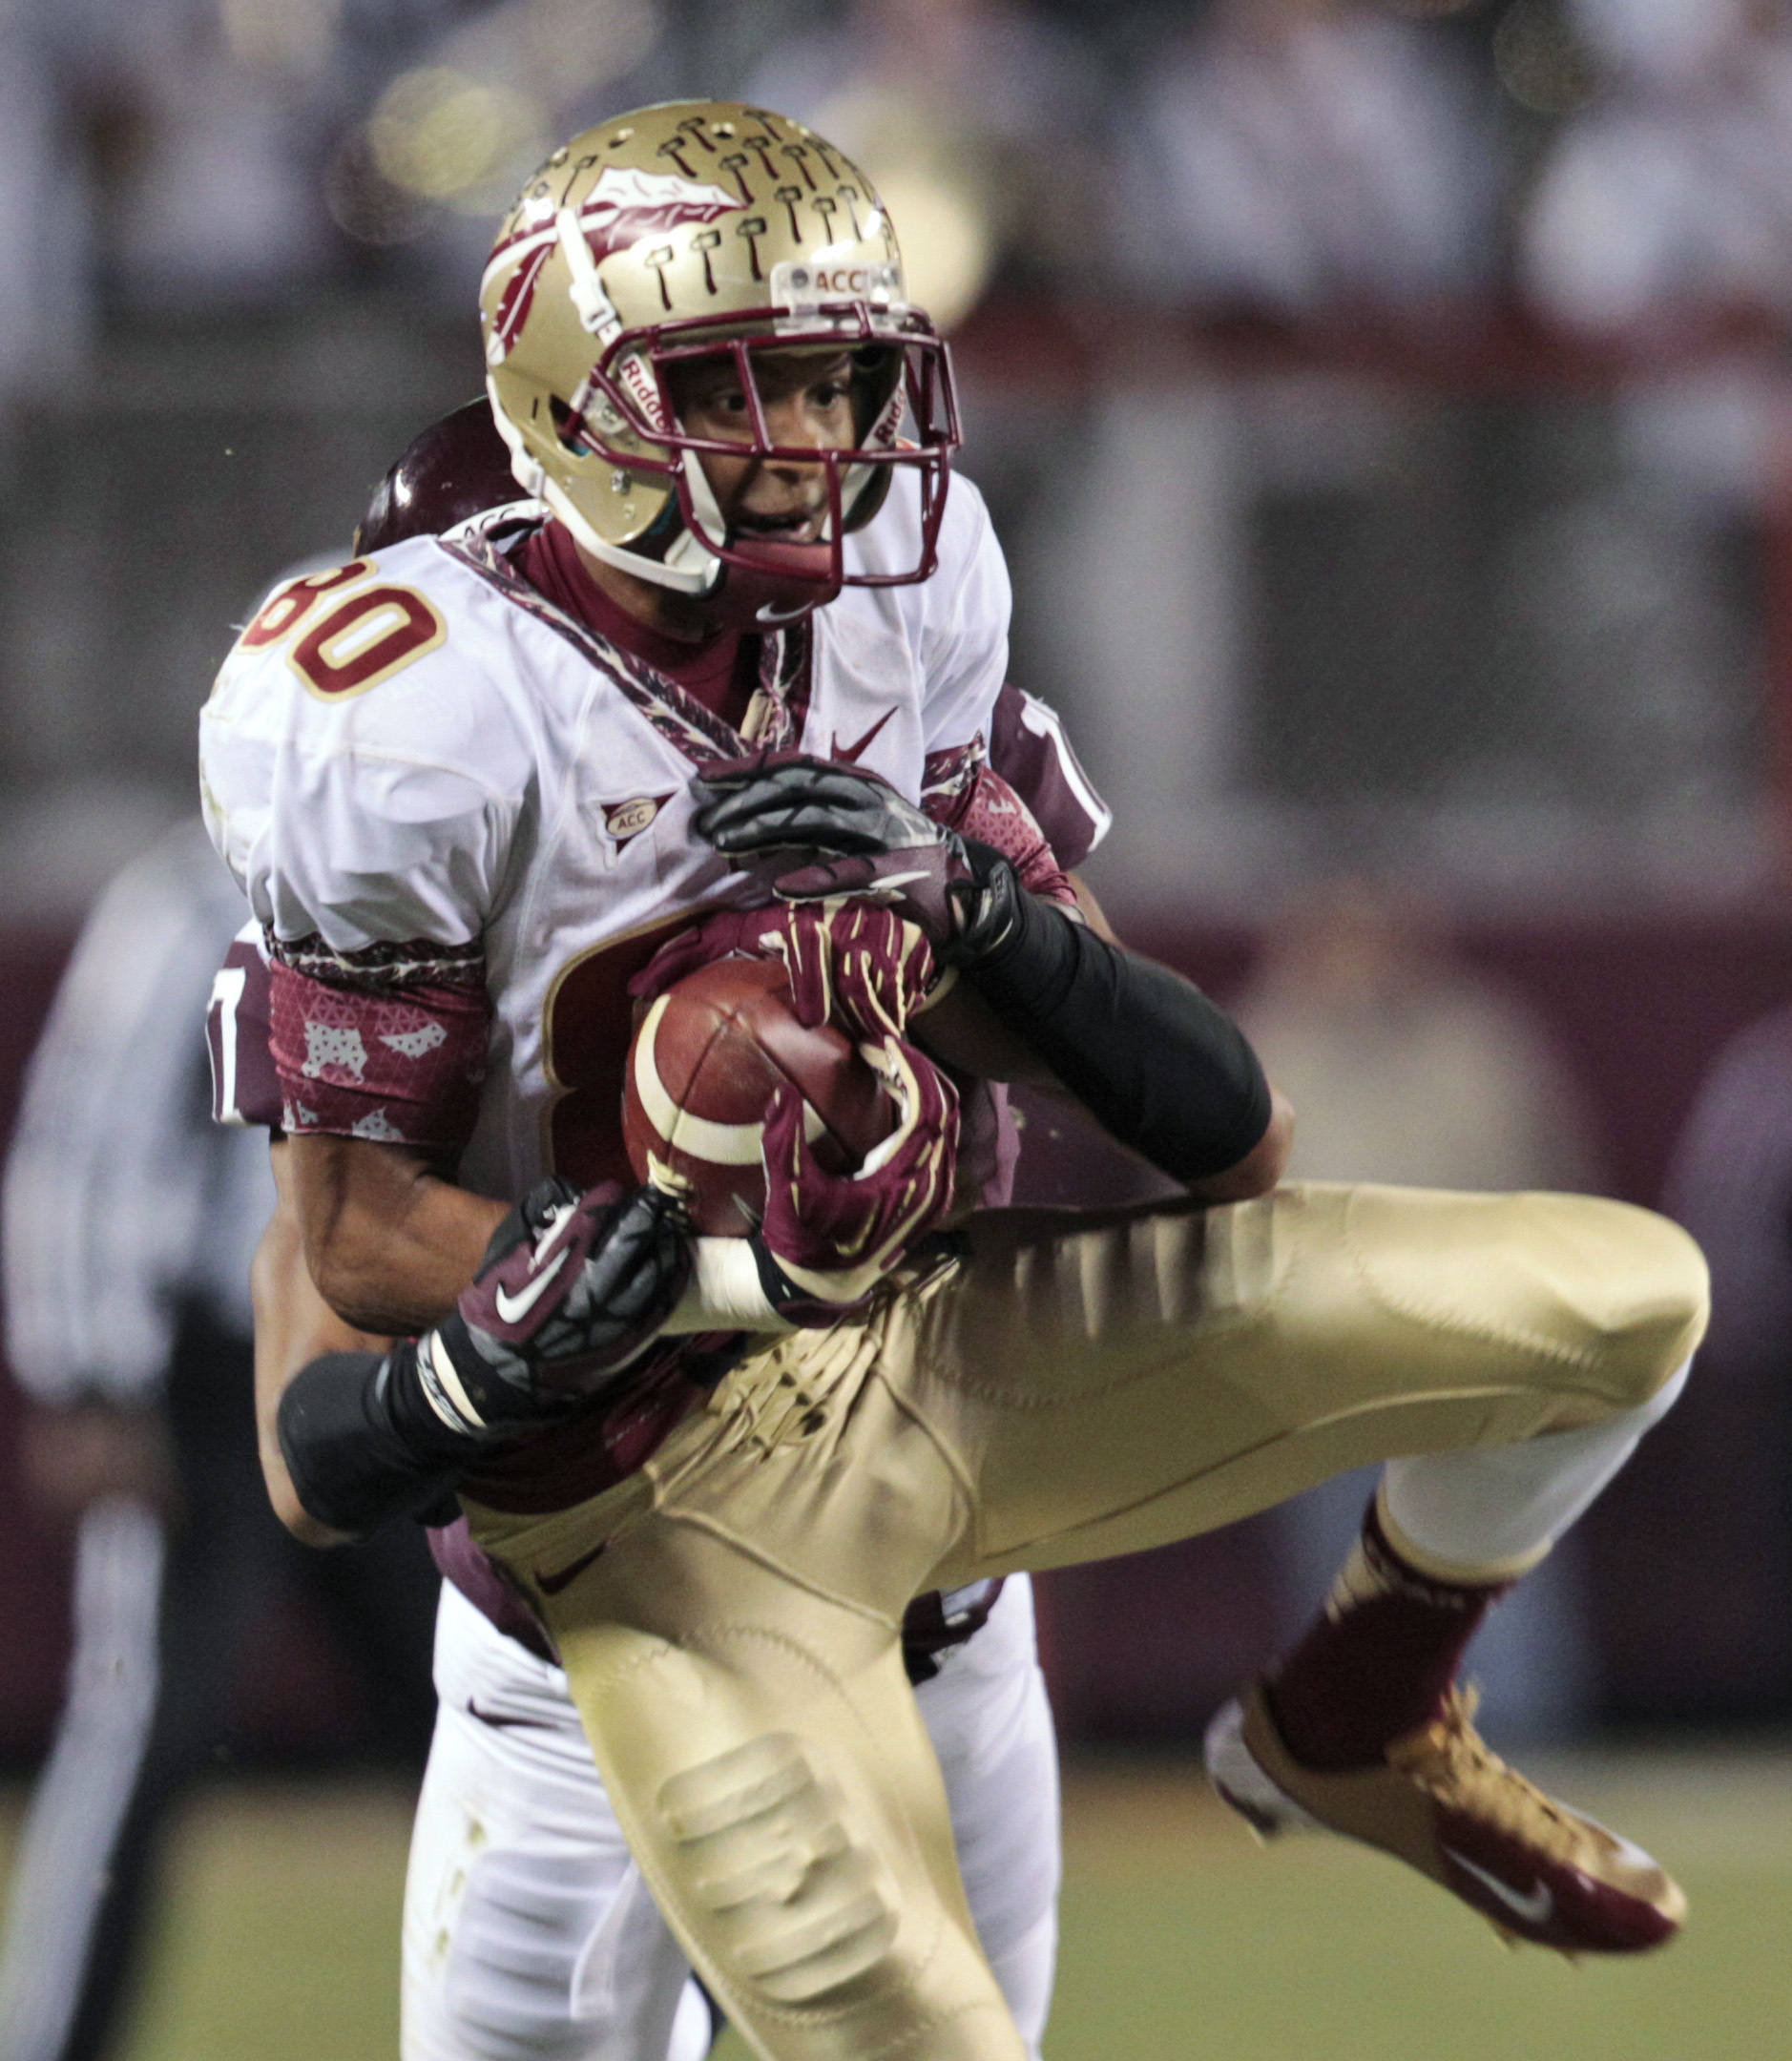 Florida State wide receiver Rashad Greene hauls in a pass. (AP Photo/Steve Helber)